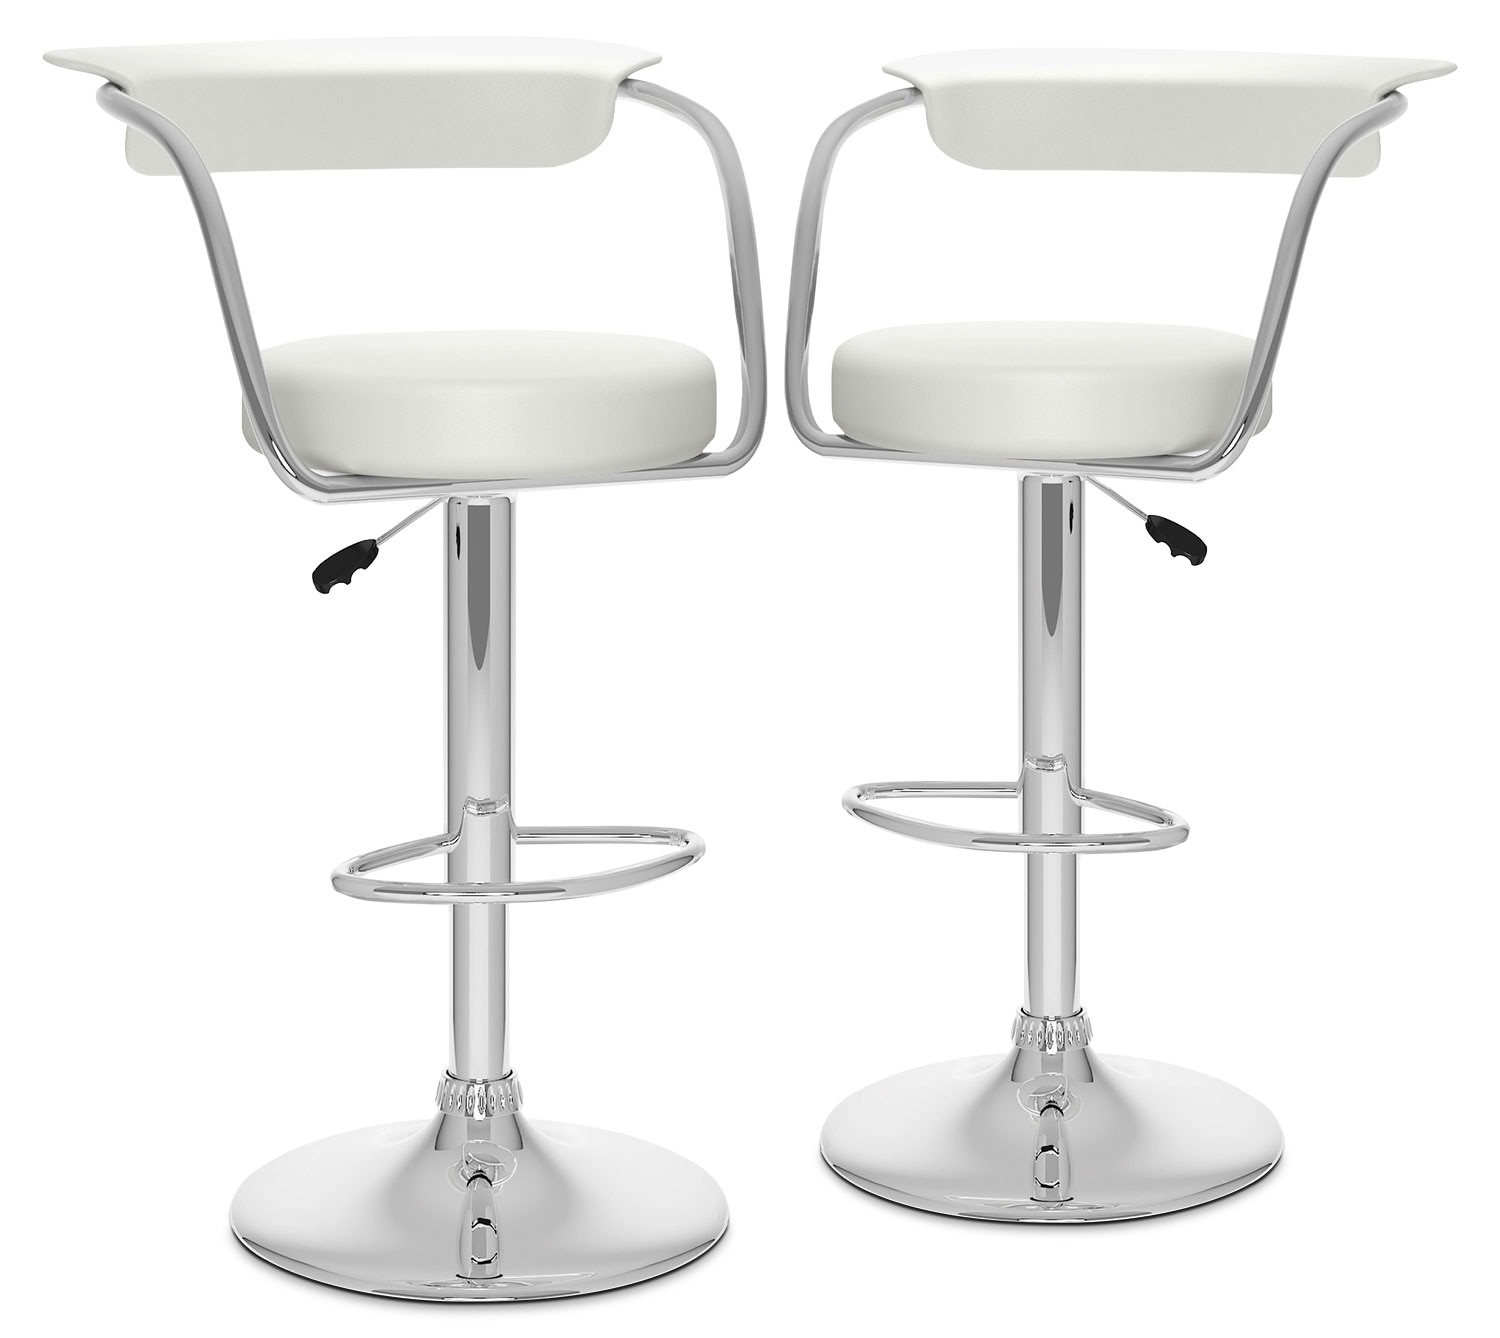 CorLiving Open-Back Adjustable Bar Stool, Set of 2 – White